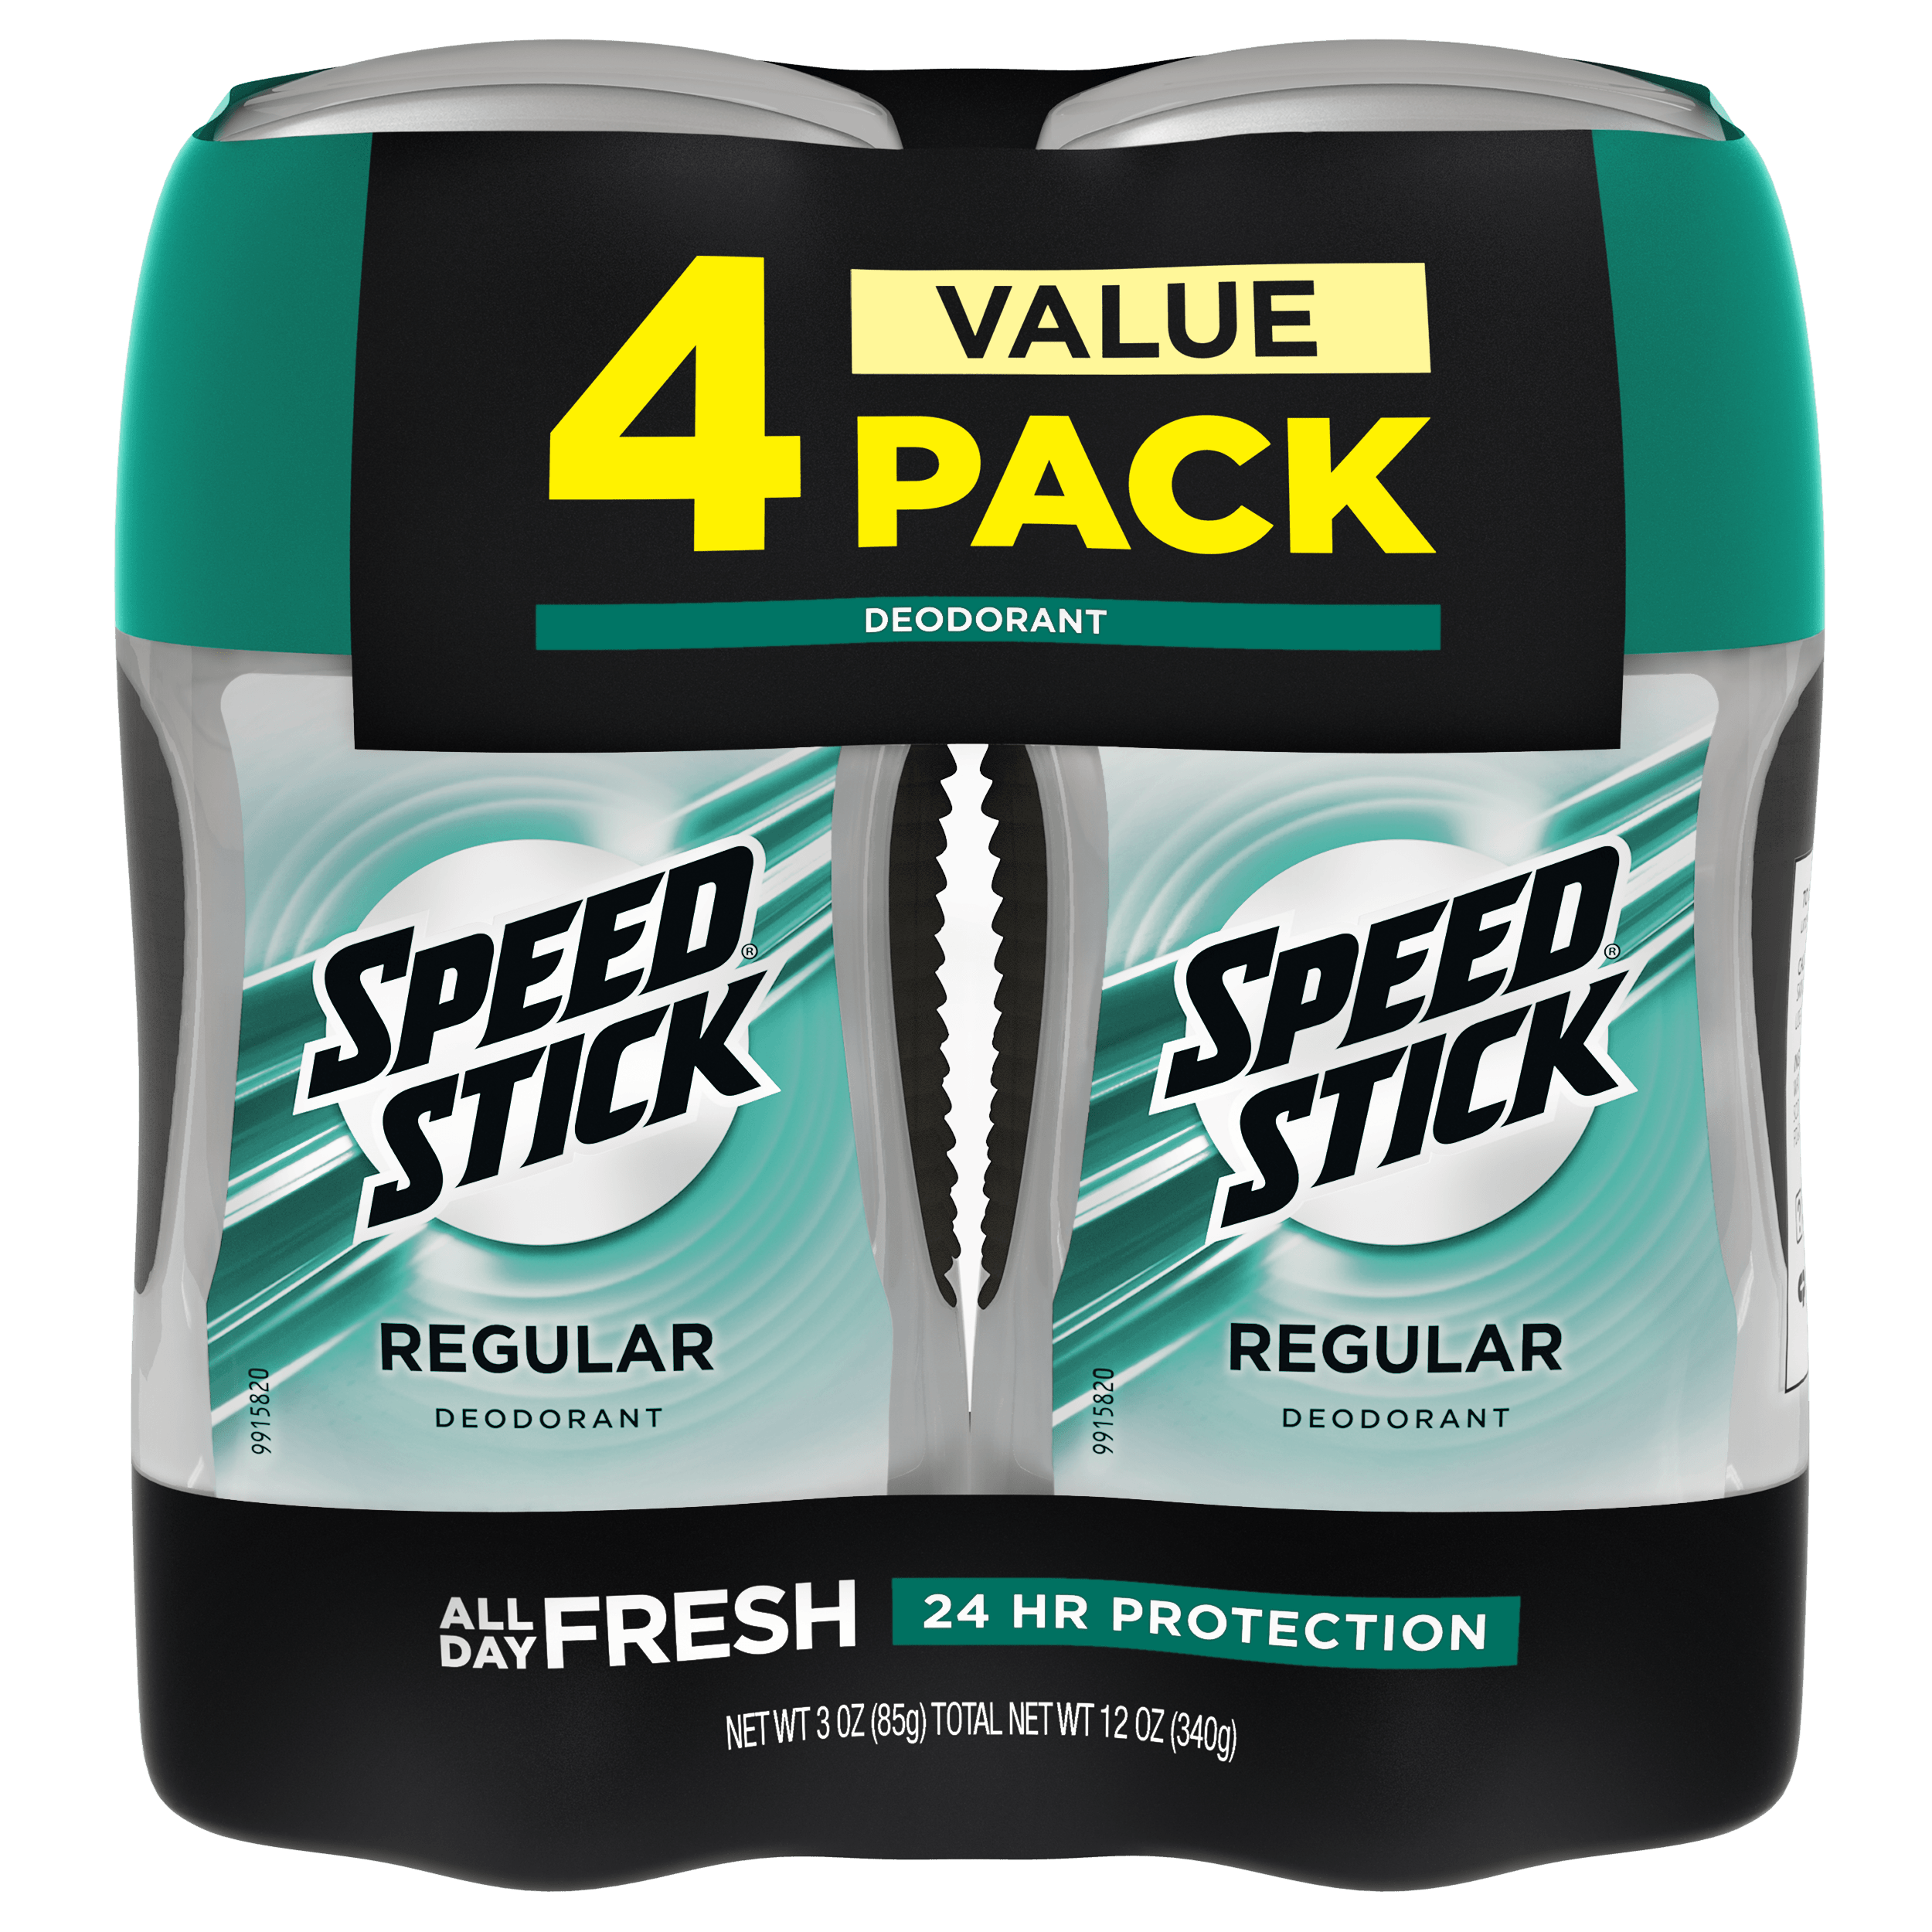 Speed Stick Regular Deodorant - 3.0 oz (4 Pack)